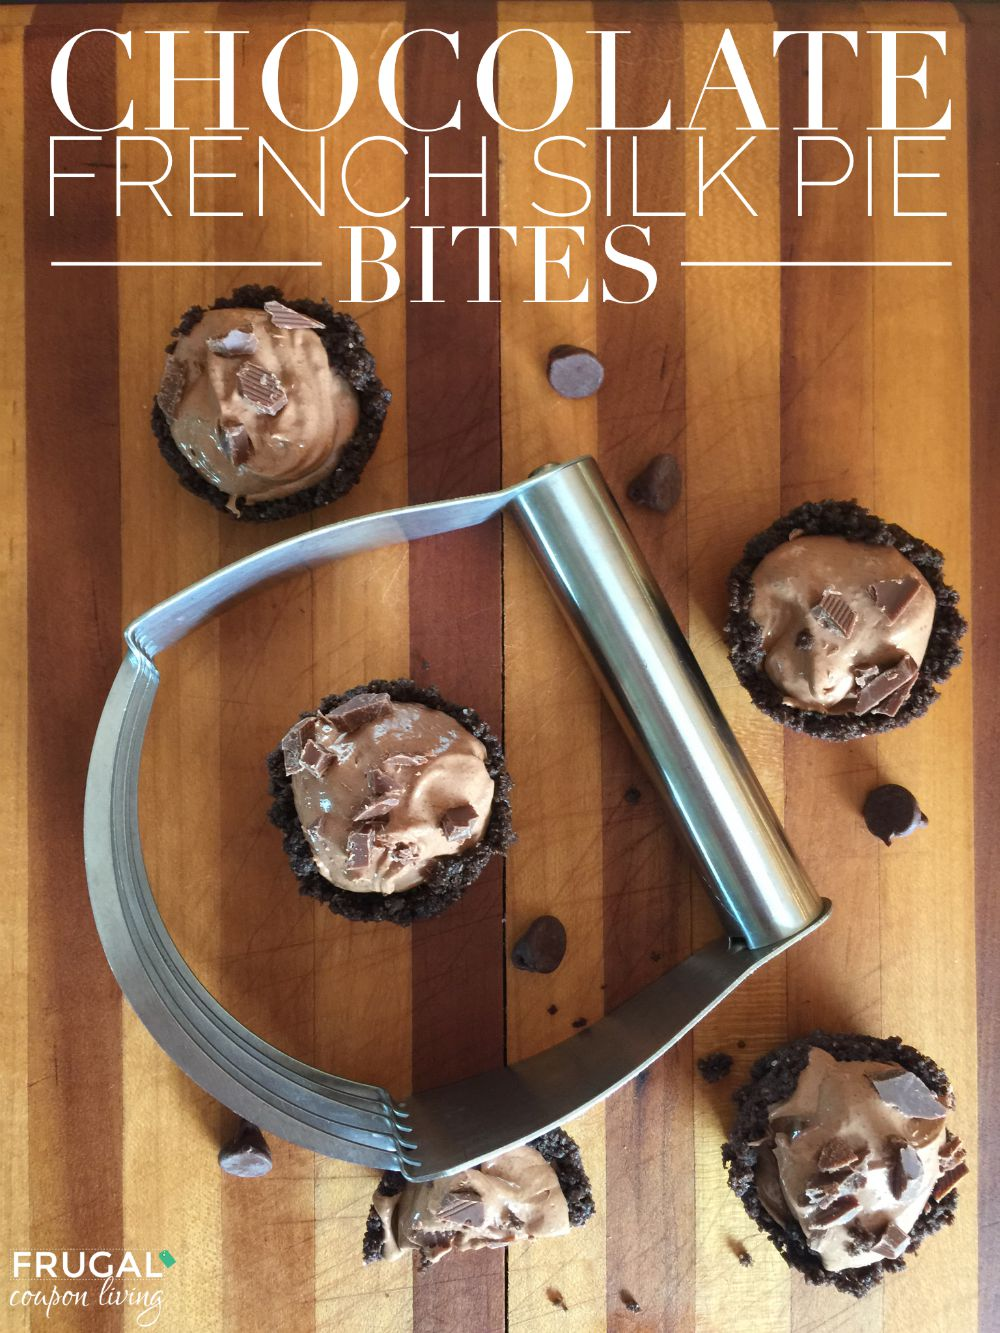 Chocolate-french-silk-pie-bites-frugal-coupon-living-1000